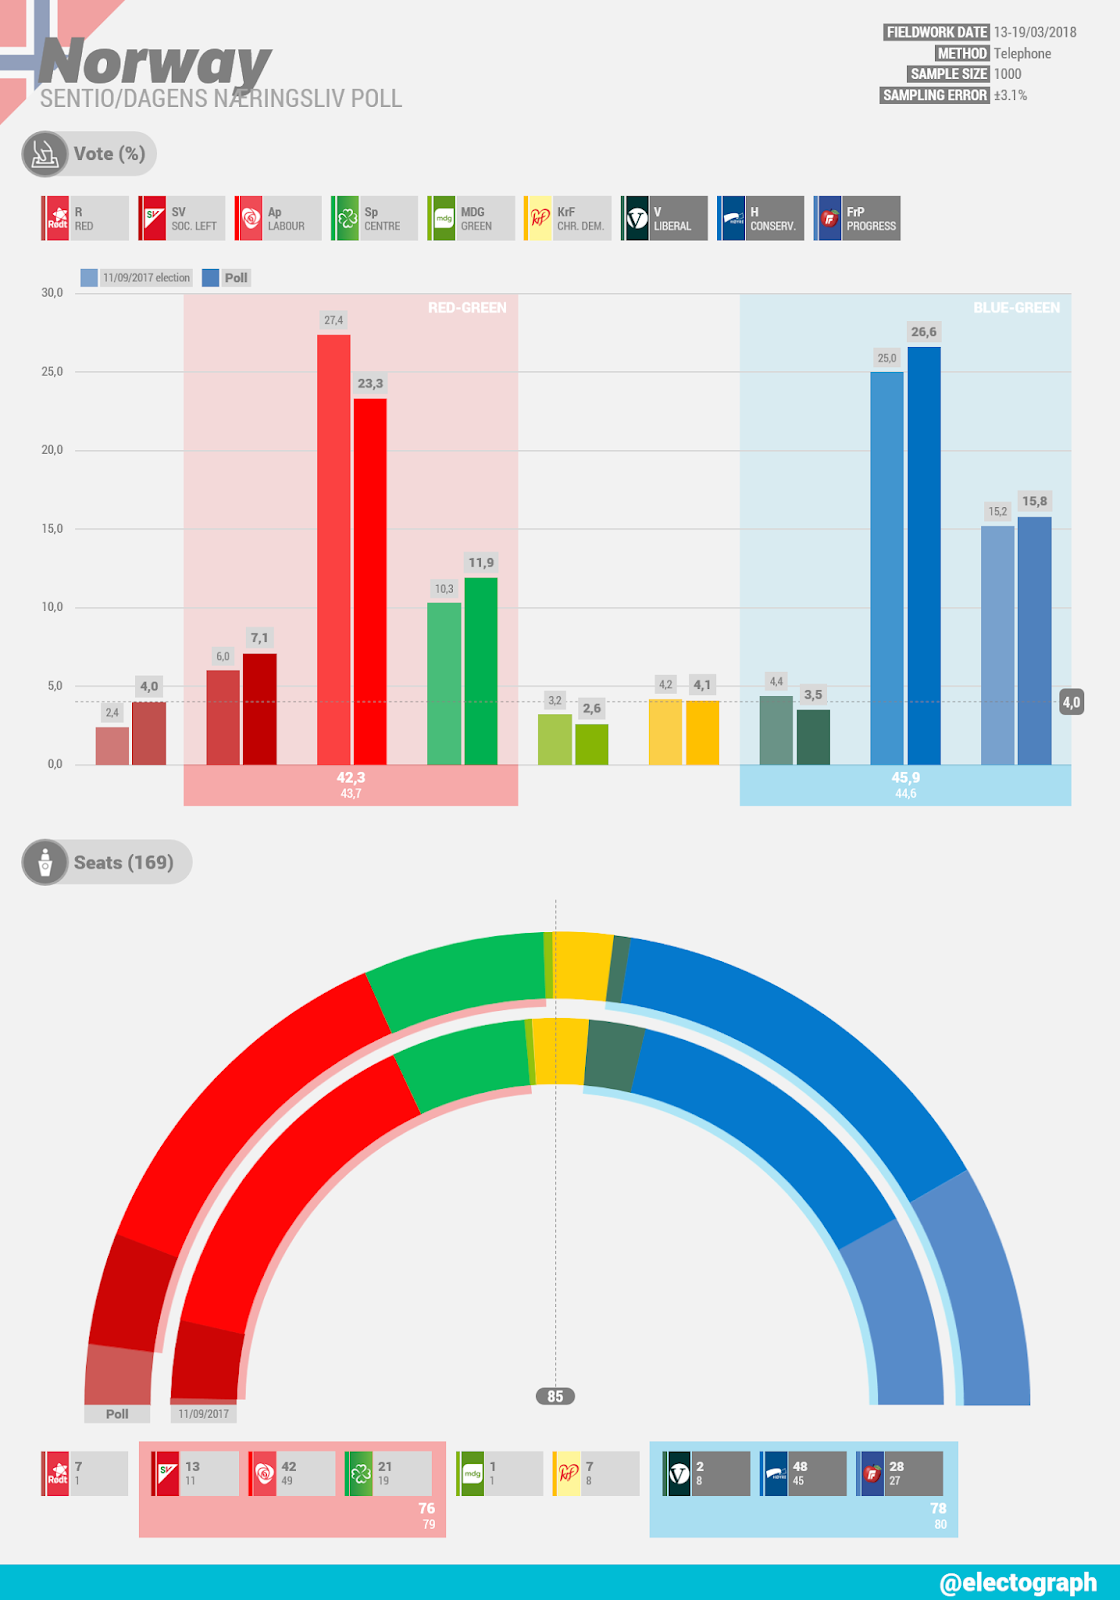 NORWAY Sentio poll for Dagens Næringsliv, March 2018